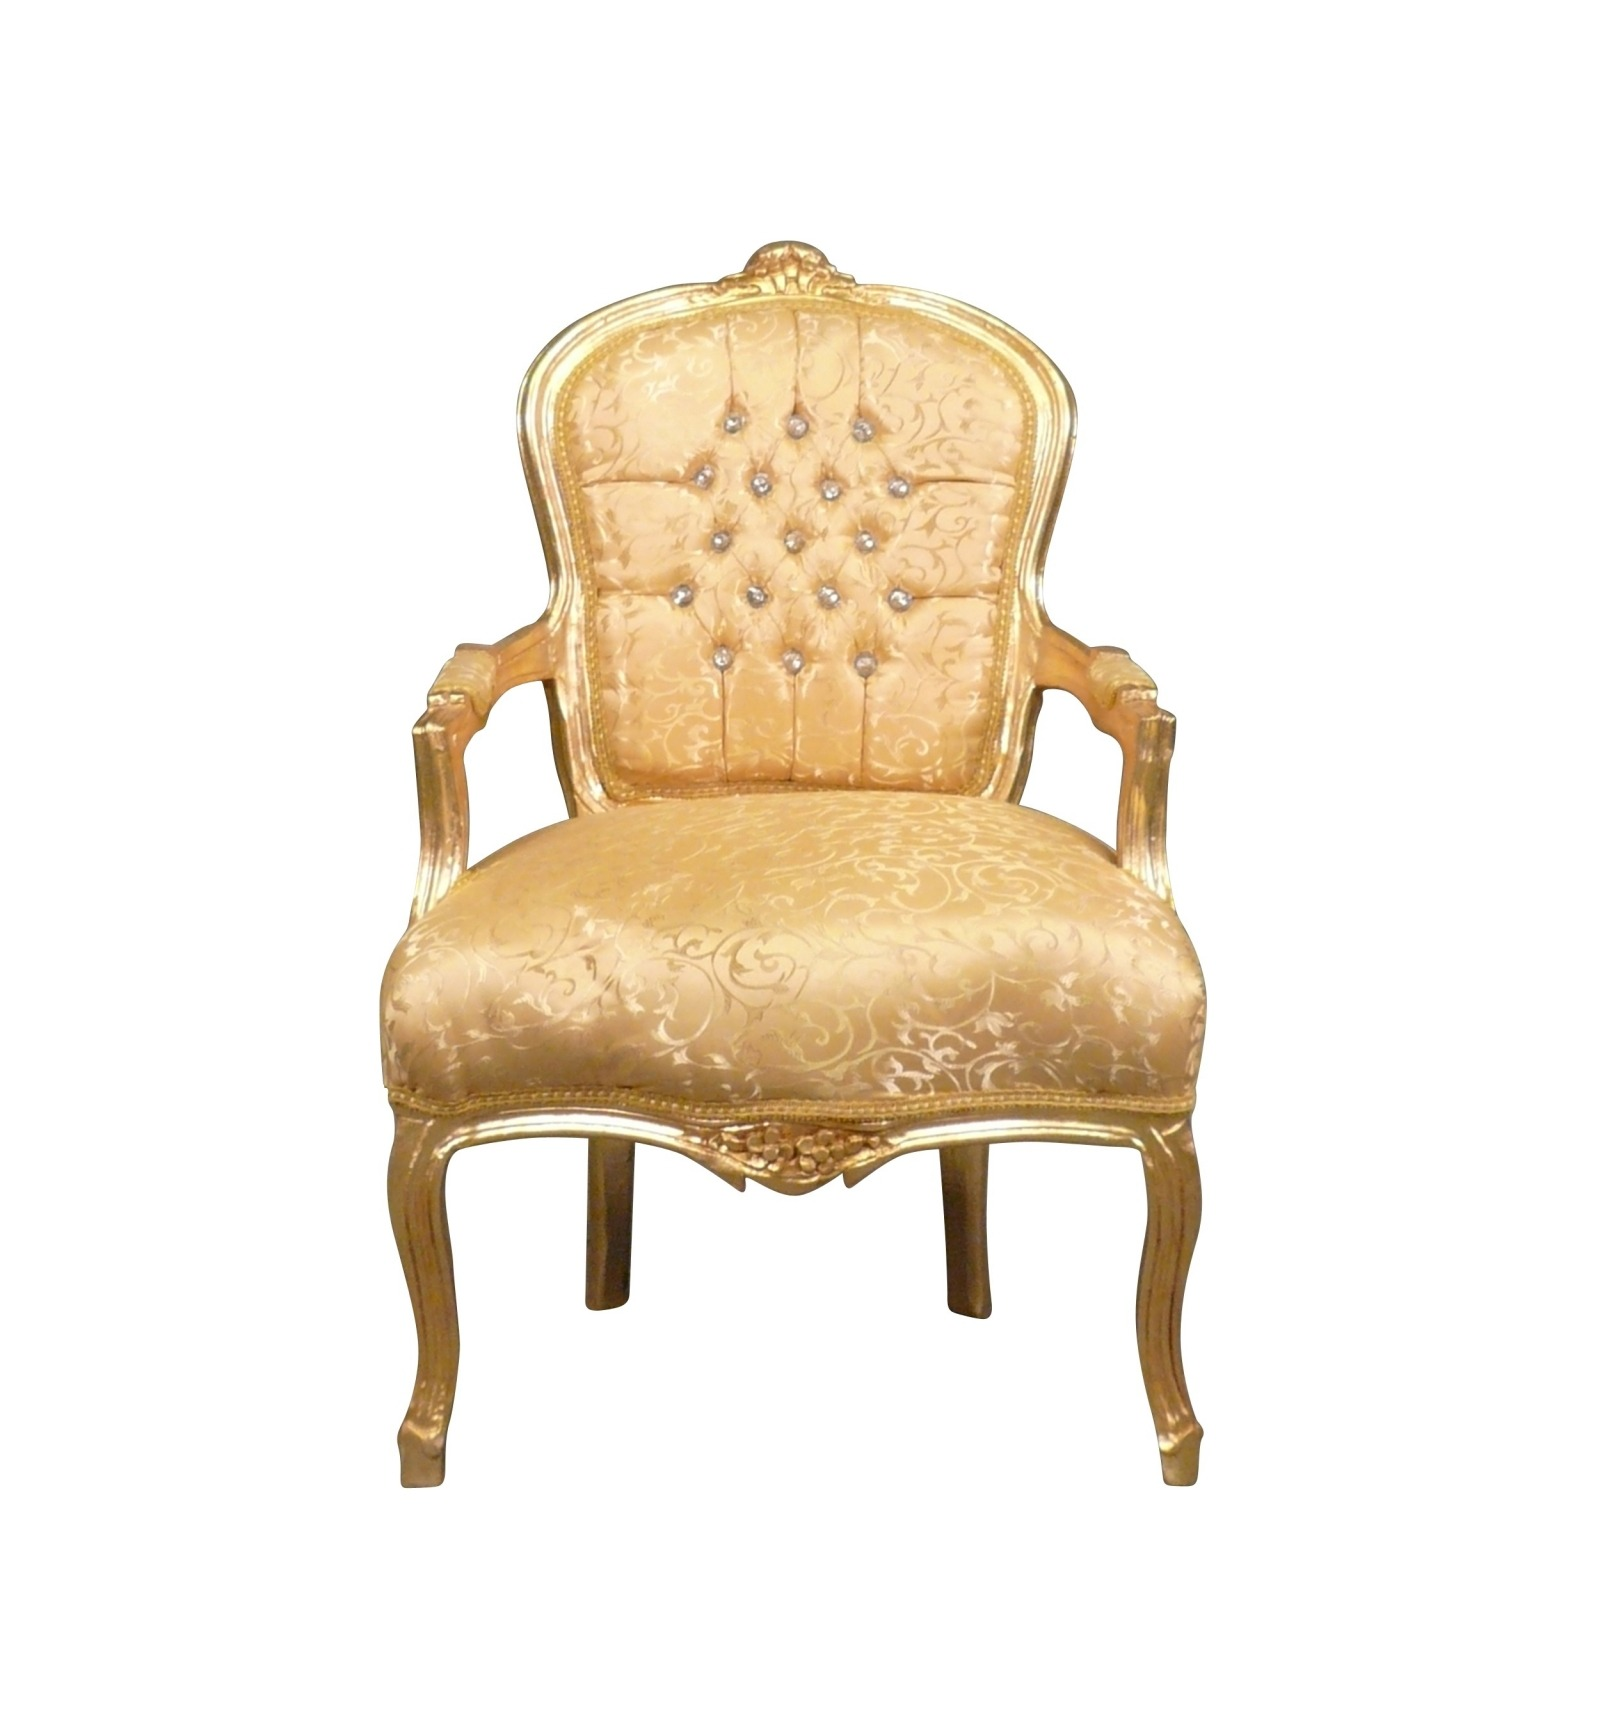 armchair louis xv gilded. Black Bedroom Furniture Sets. Home Design Ideas